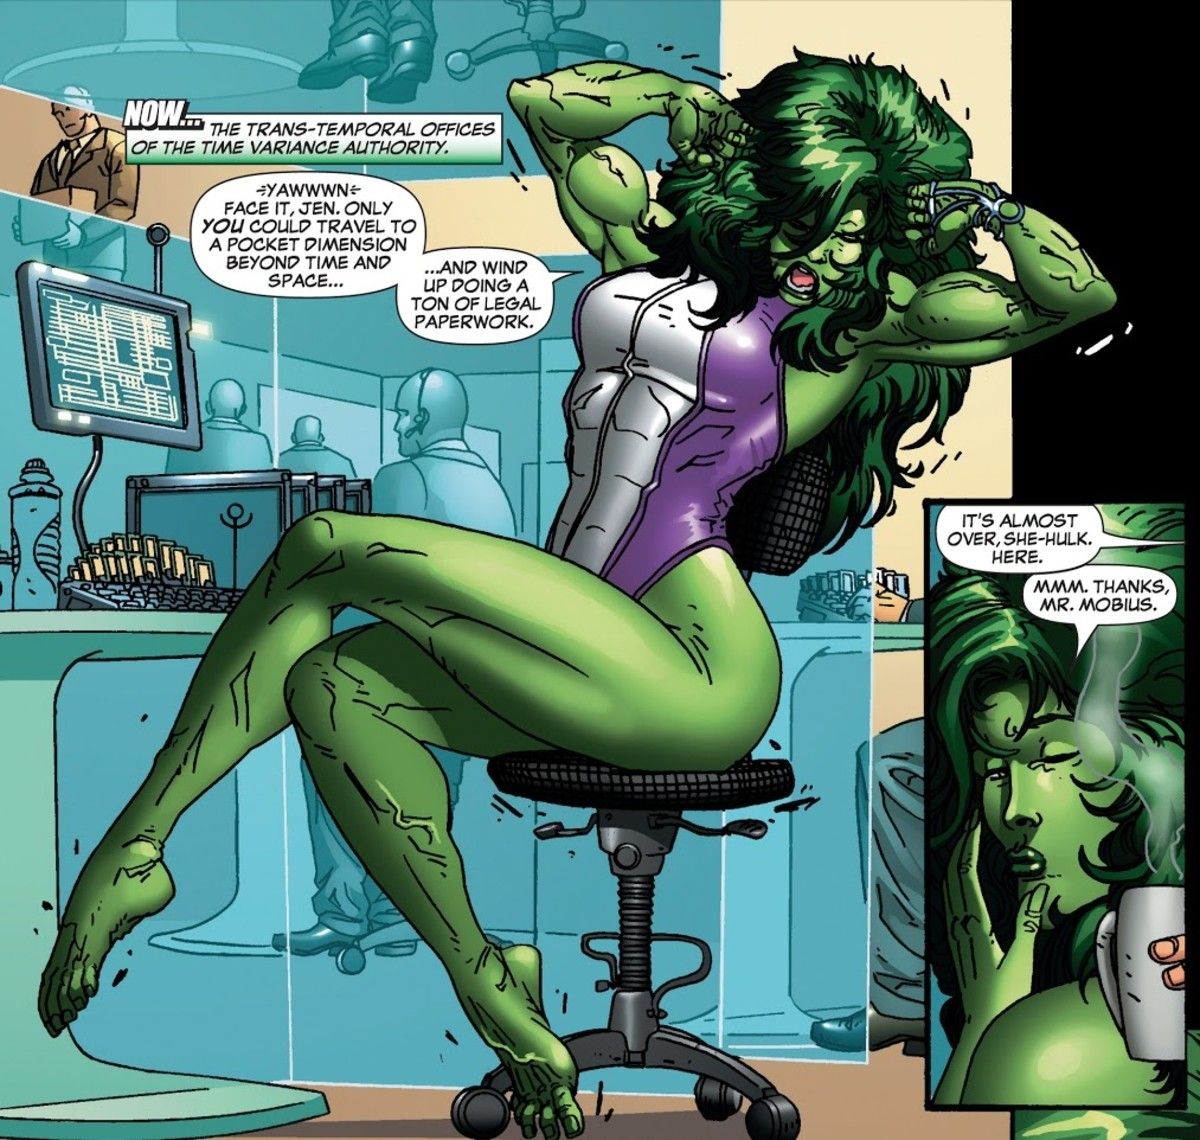 """I love she hulk. join list: Weirdfetishthings (1187 subs)Mention History. ti' THE TM» 1. E , AUTHORITA FACE M JEN. y"""" YOU '. E TRAVEL irie A F' C} GKYT DIMENSIO"""